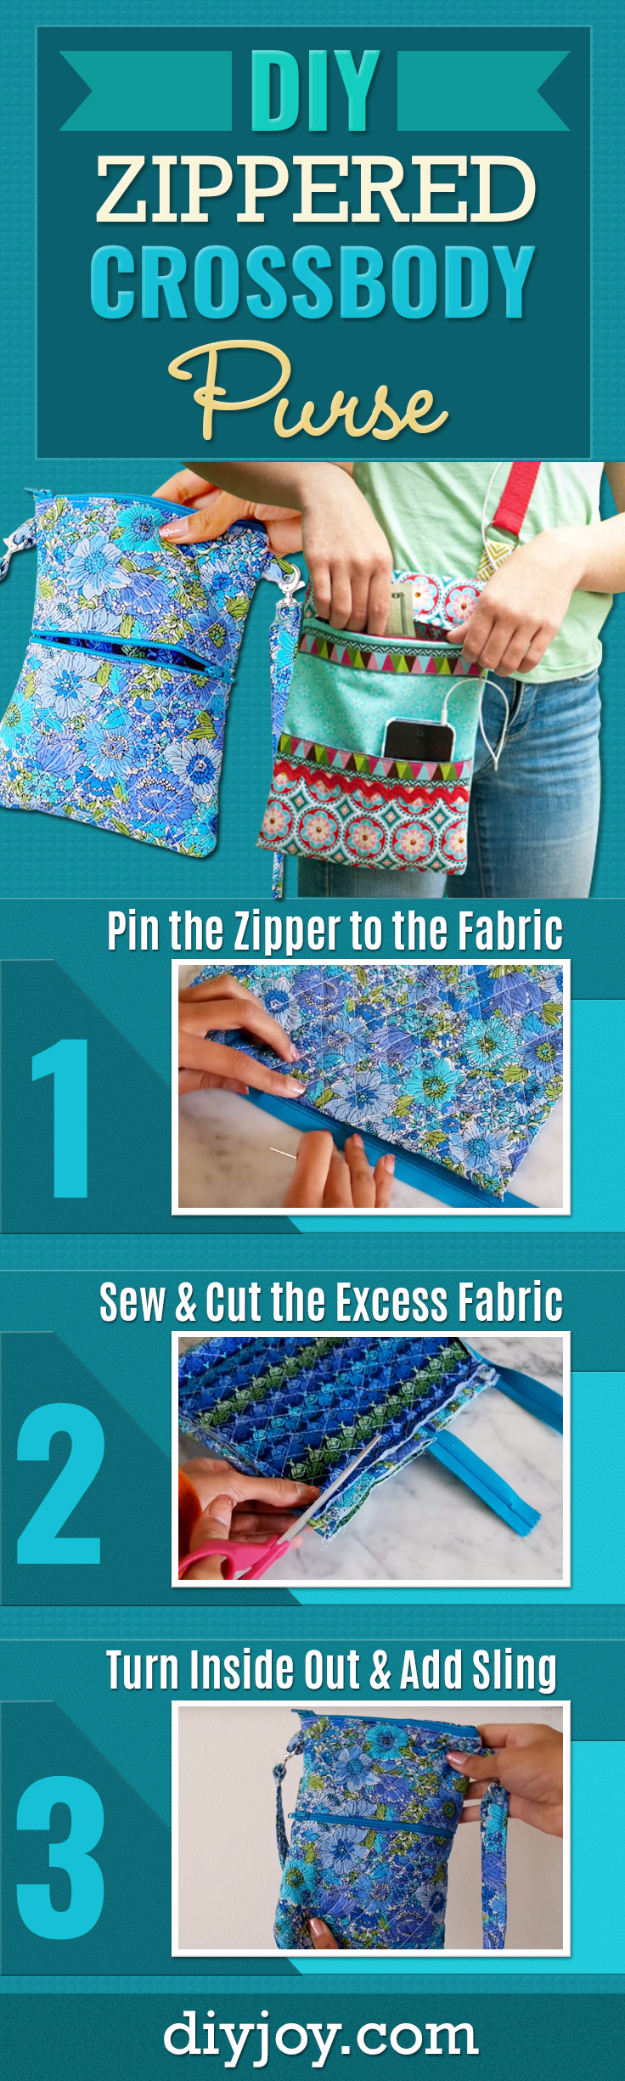 Creative DIY Projects With Zippers - Zippered Crossbody Bag - Easy Crafts and Fashion Ideas With A Zipper - Jewelry, Home Decor, School Supplies and DIY Gift Ideas - Quick DIYs for Fun Weekend Projects